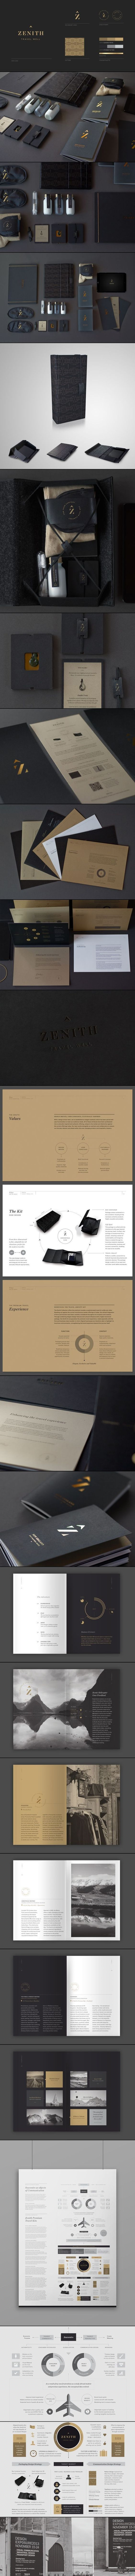 Zenith Travel Well — Designspiration